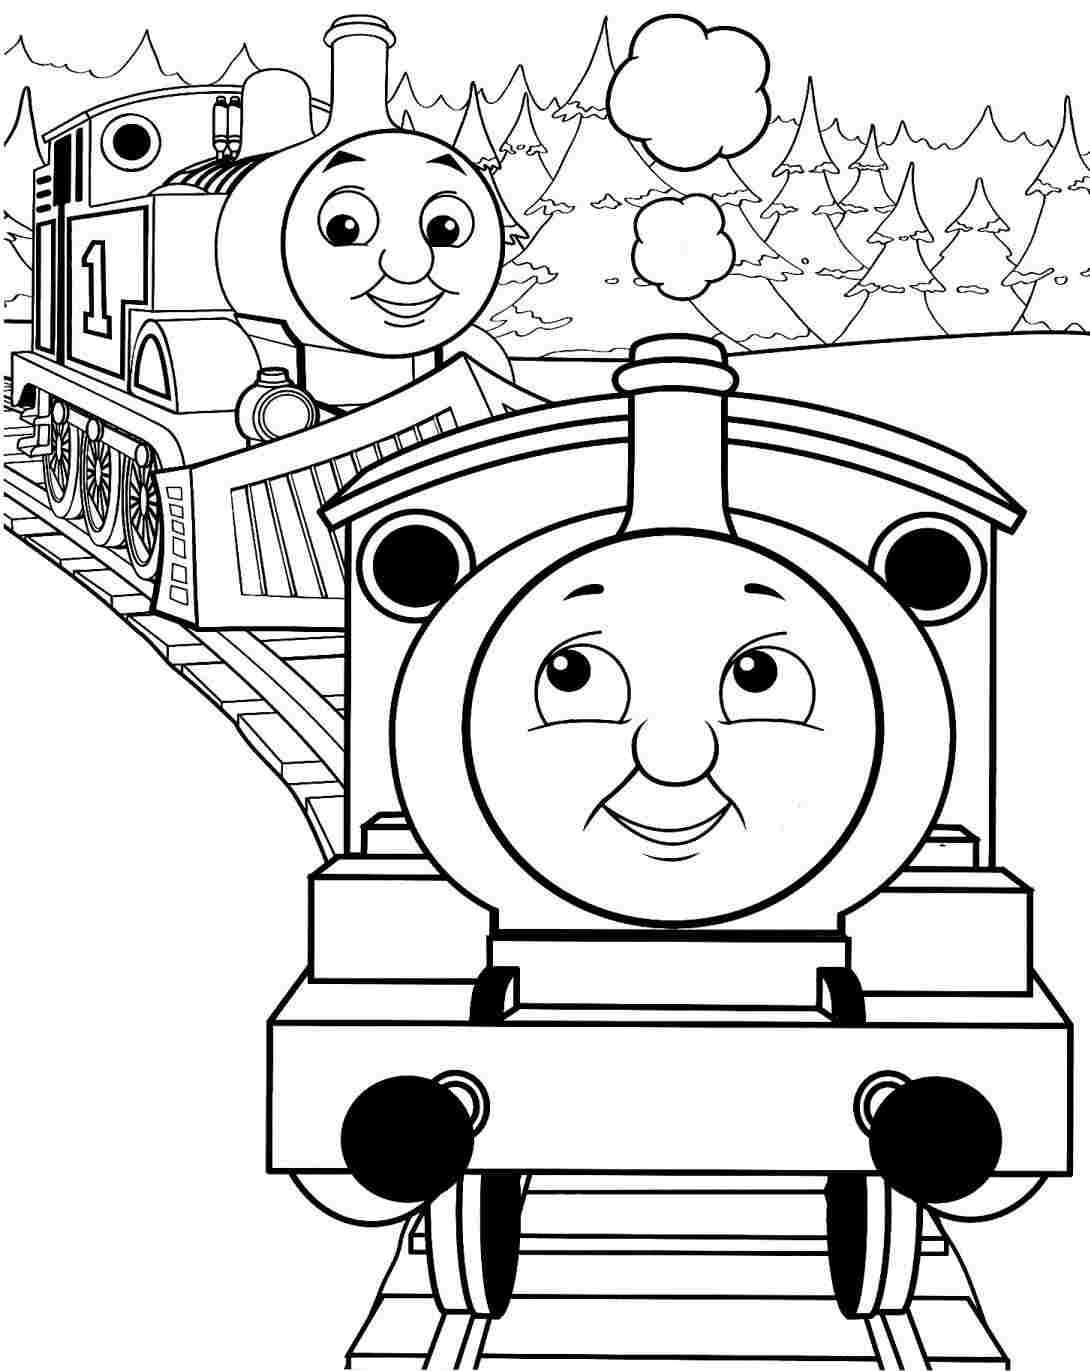 Coloring pages trains for kids - Simple Thomas The Train Coloring Pages Thomas The Train Coloring